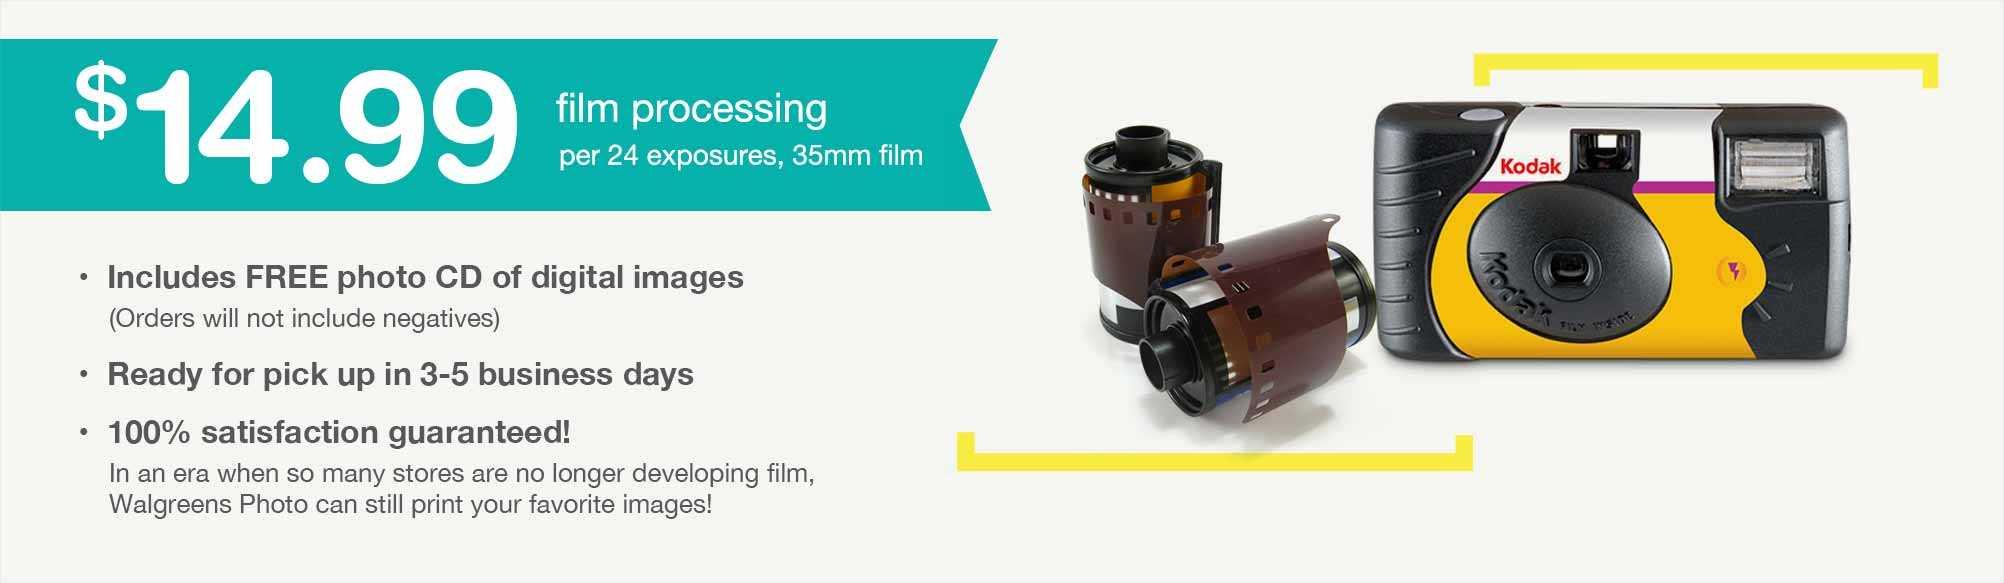 Film Processing | Walgreens PhotoFilm Processing | Walgreens